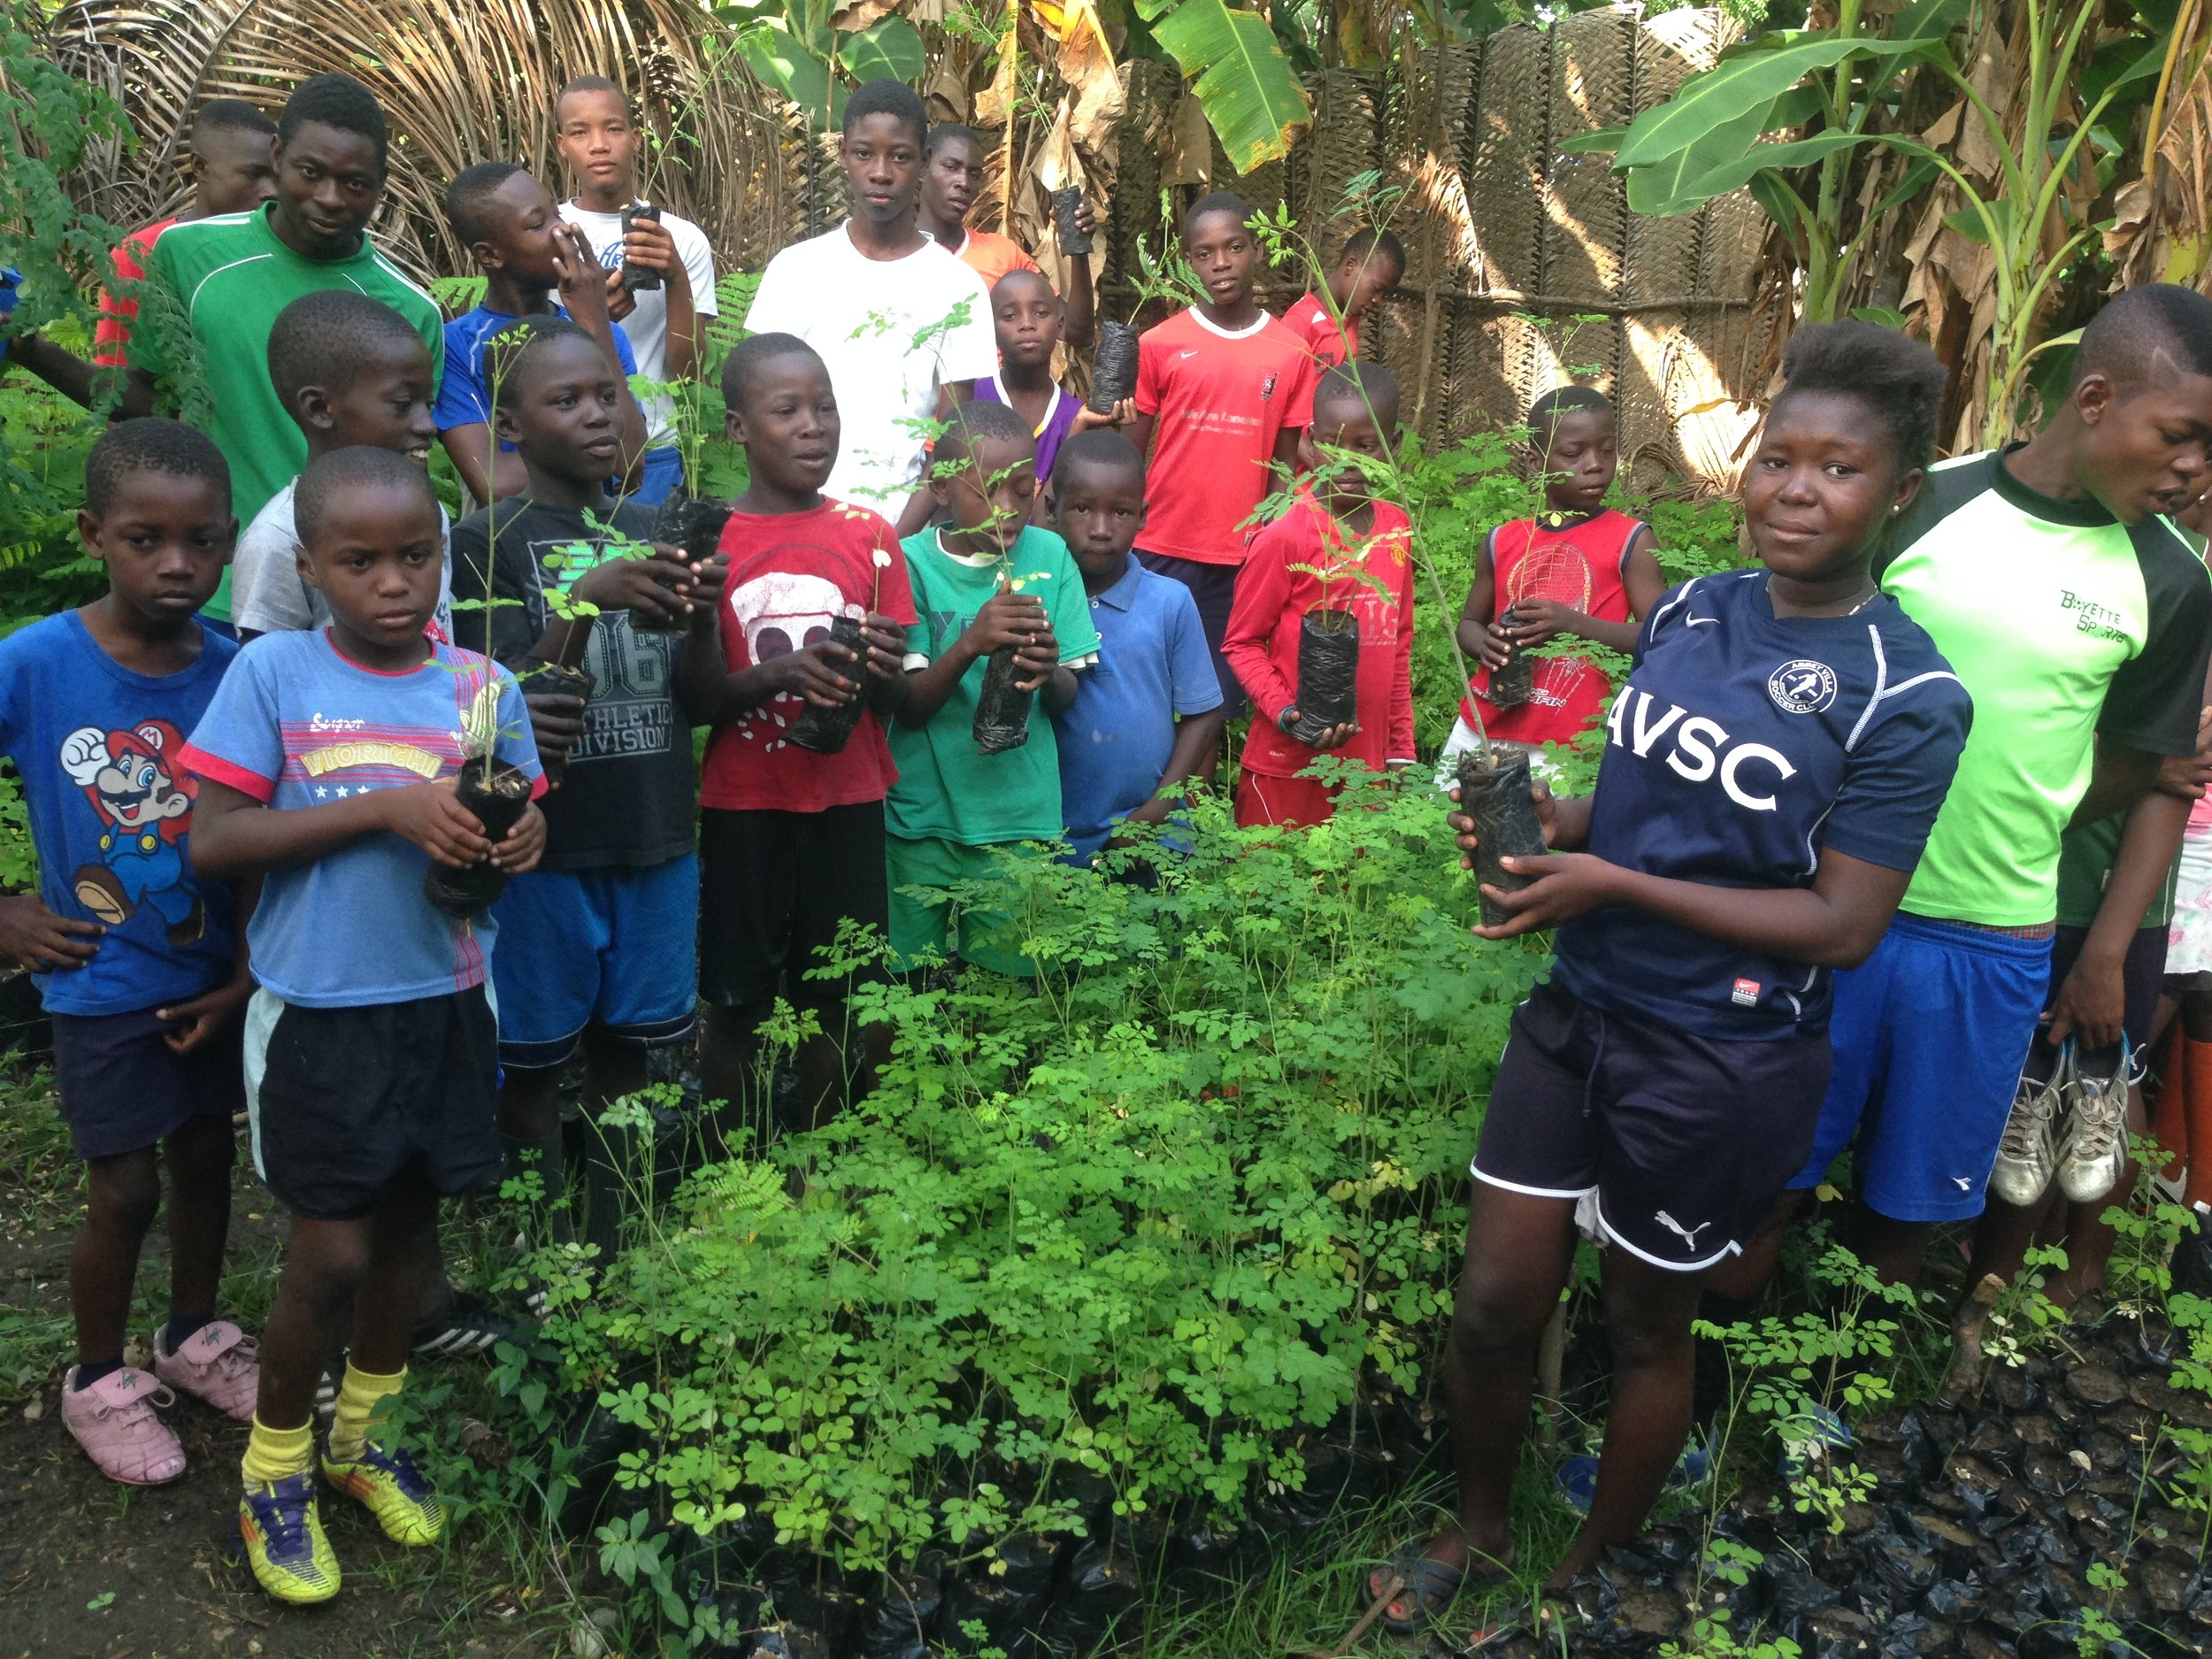 Kids in Bossan with their tree nursery